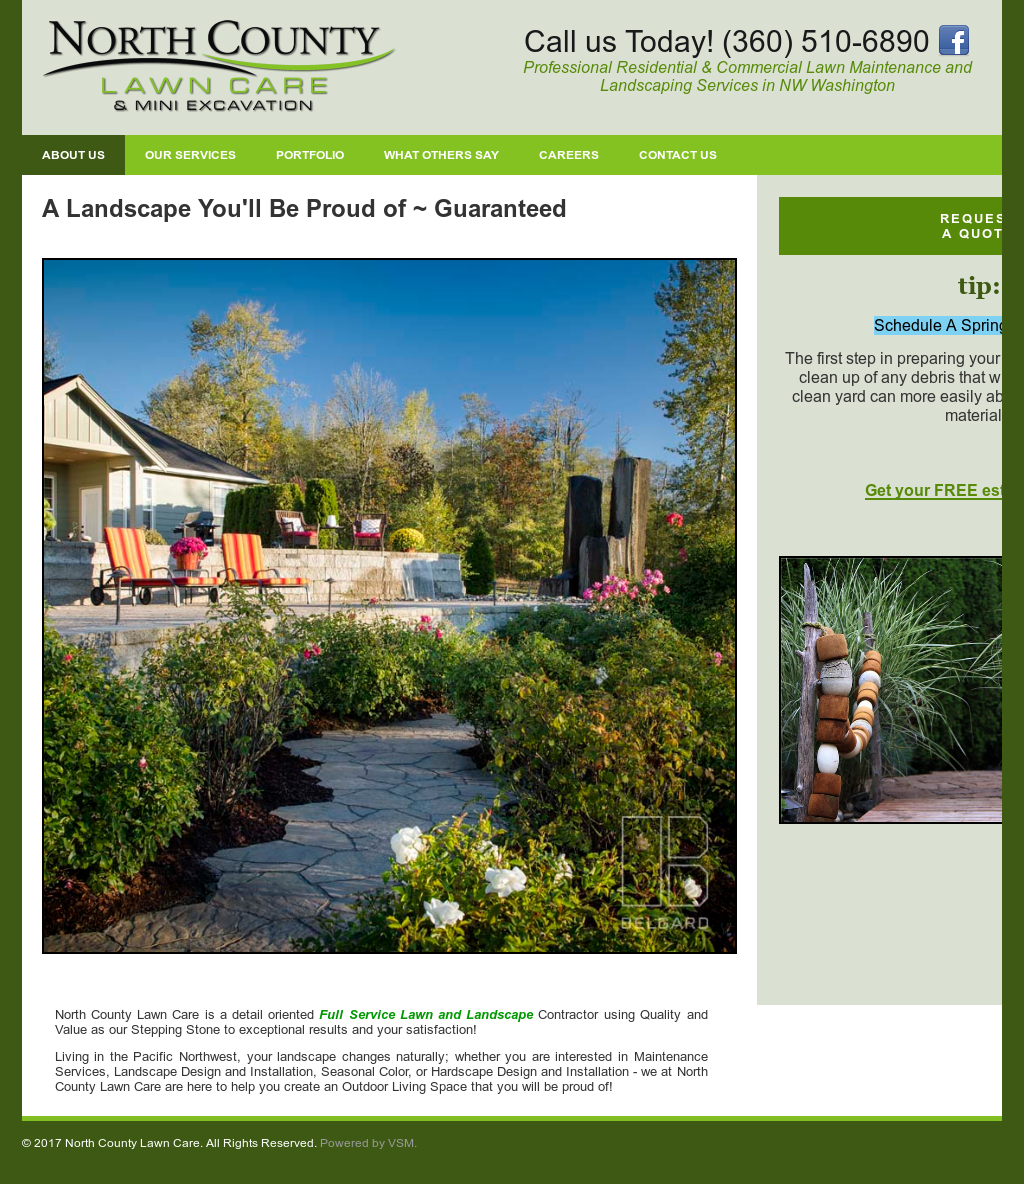 North County Lawn Care Website History